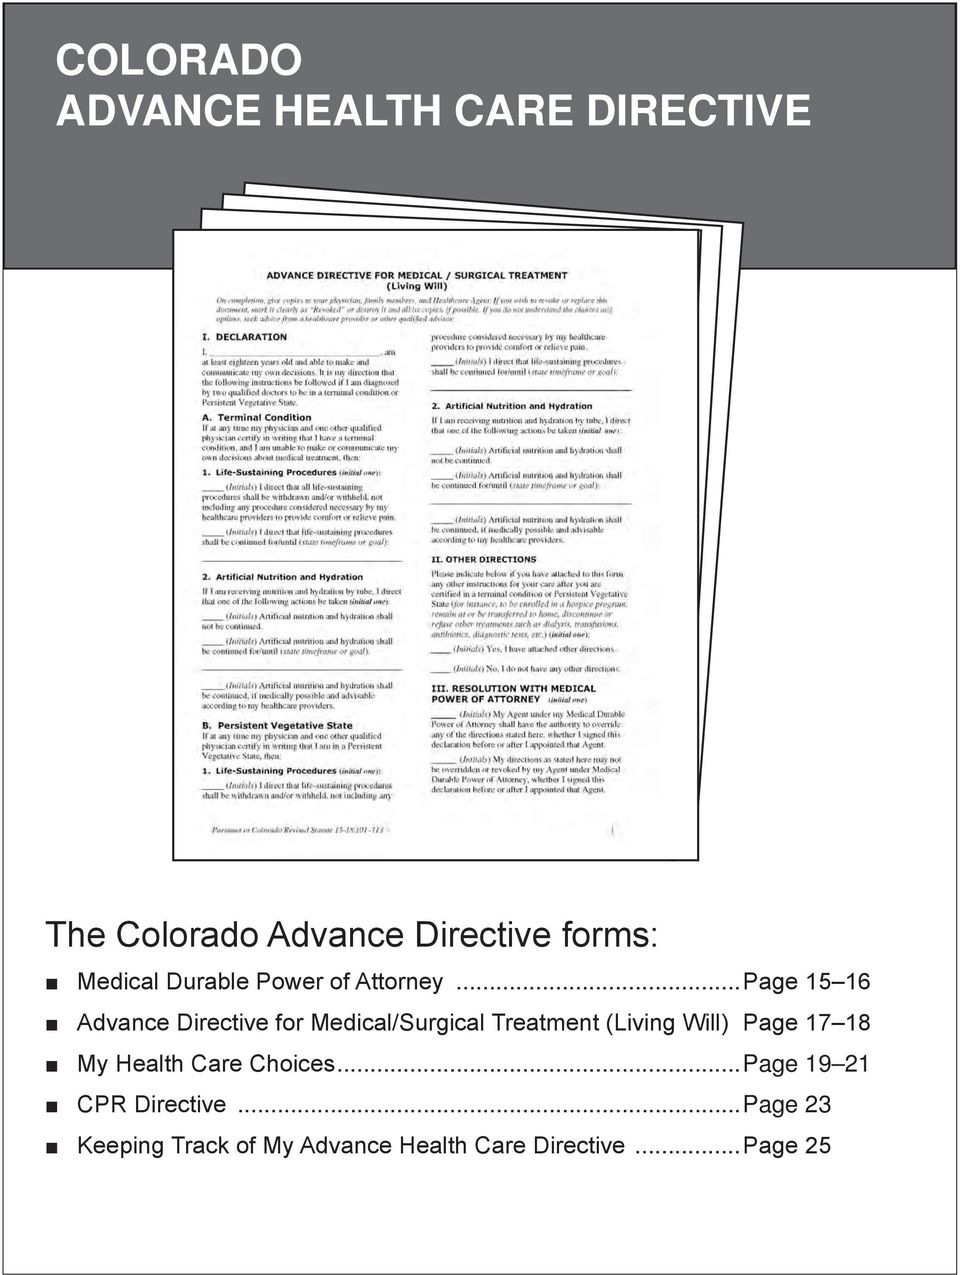 ..Page 15 16 Advance Directive for Medical/Surgical Treatment (Living Will).